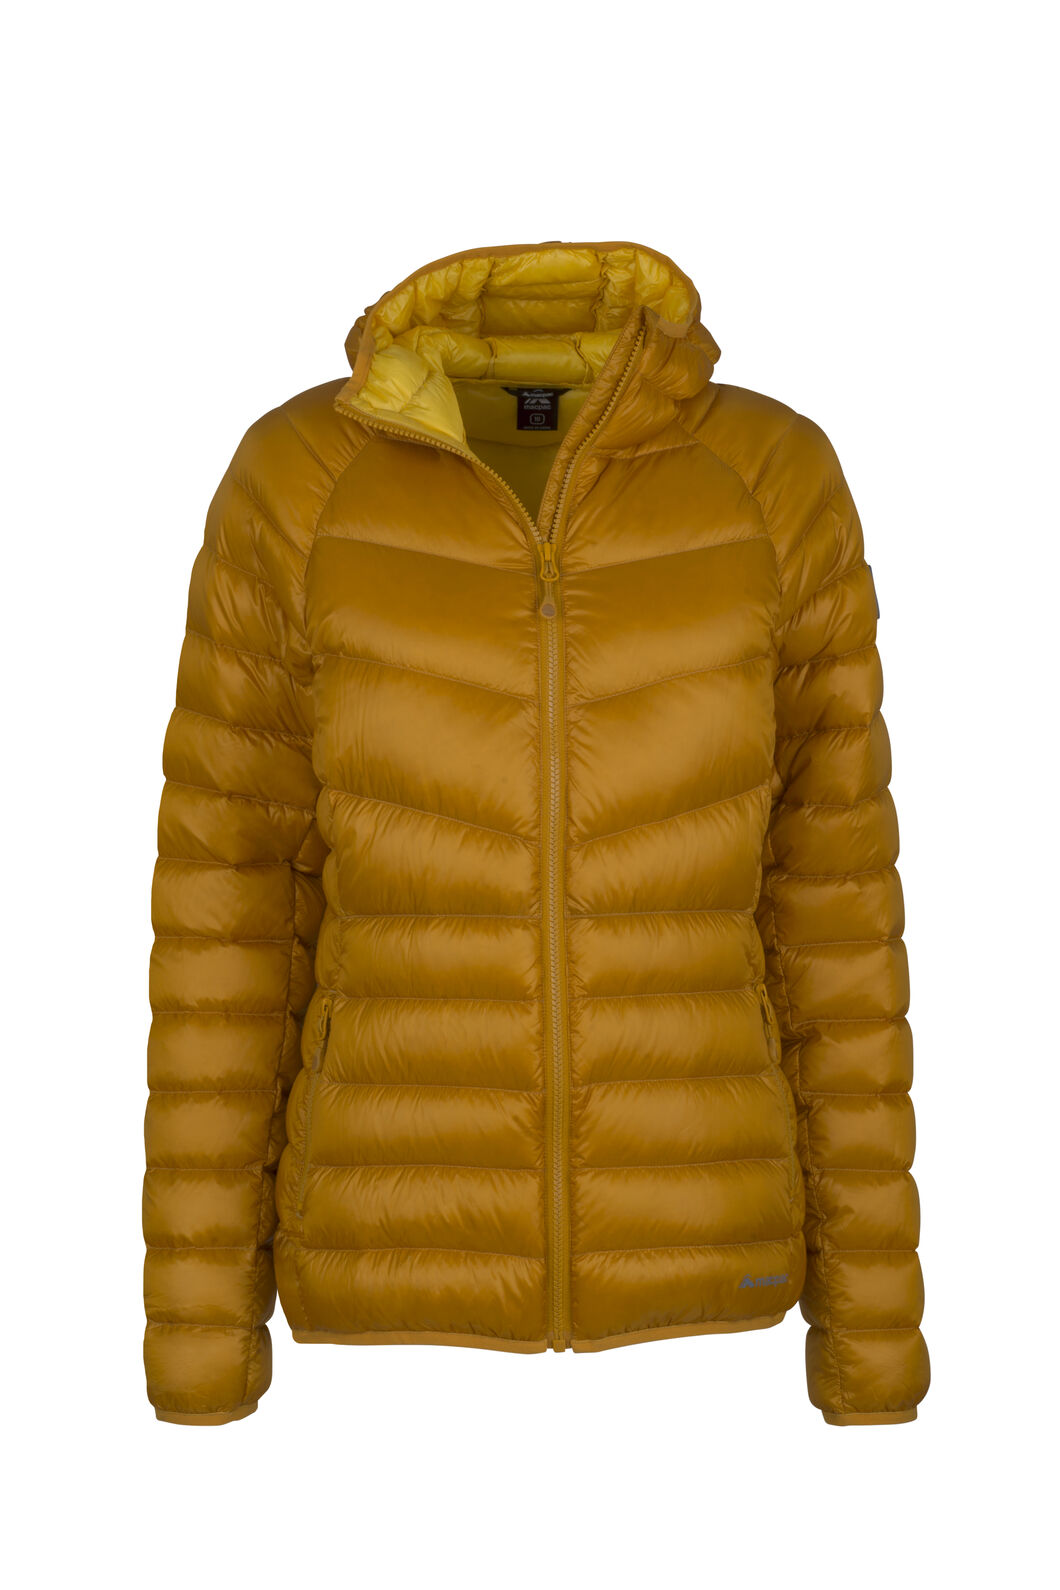 Macpac Mercury Down Jacket - Women's, Golden Yellow, hi-res